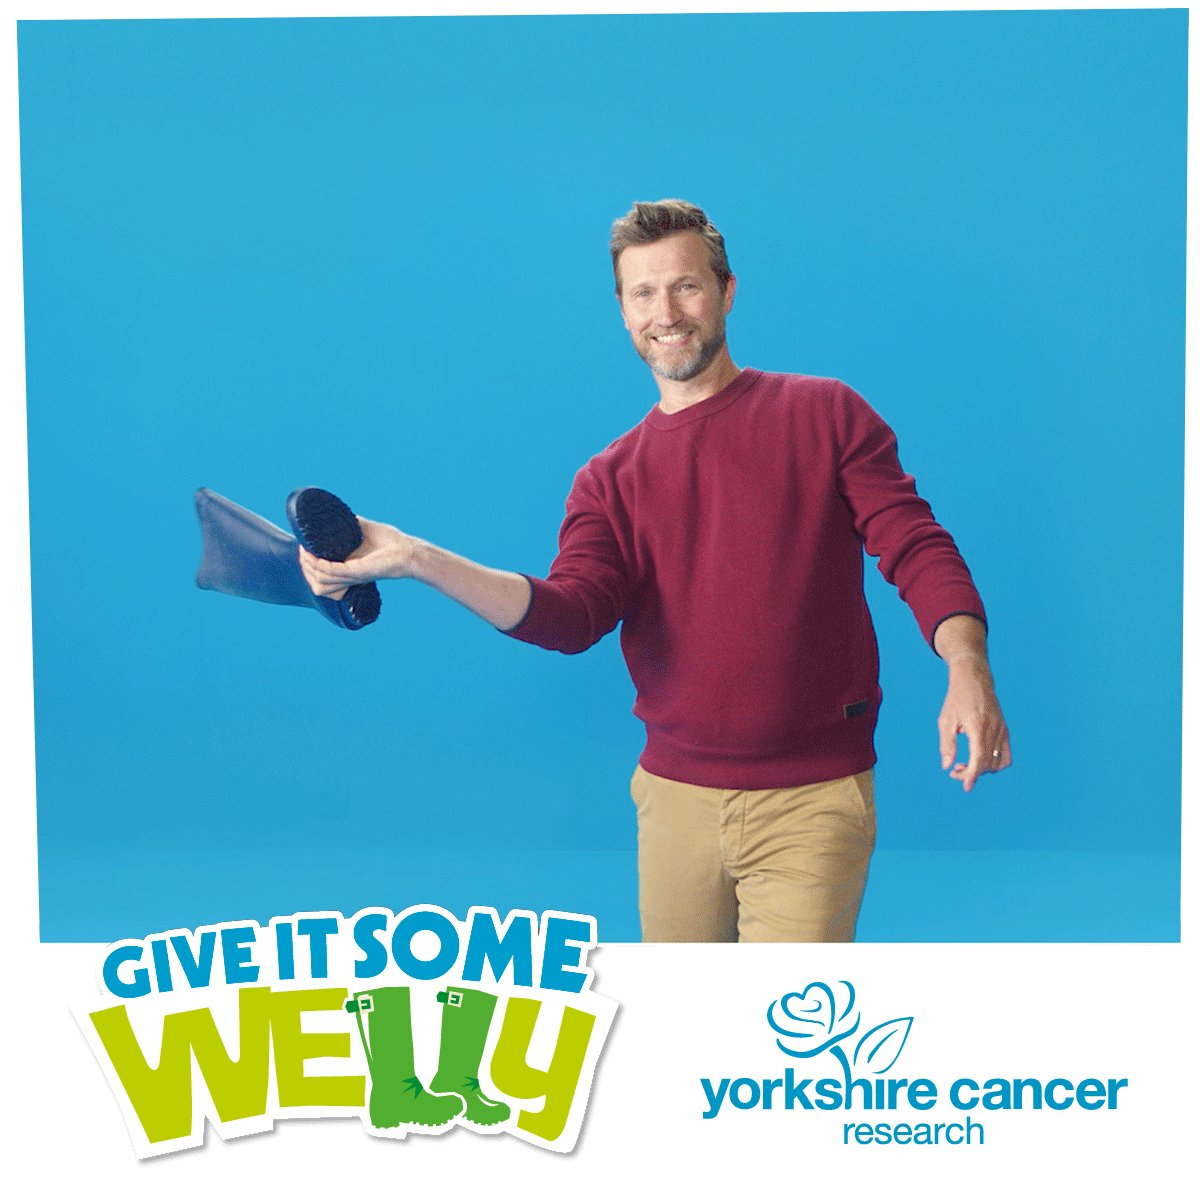 There's just one day to go! Join us tomorrow as we attempt to set a new virtual welly wanging world record this Yorkshire Day. We'll see you at 2pm tomorrow to set a new world record!  @YorksSociety #GiveItSomeWelly